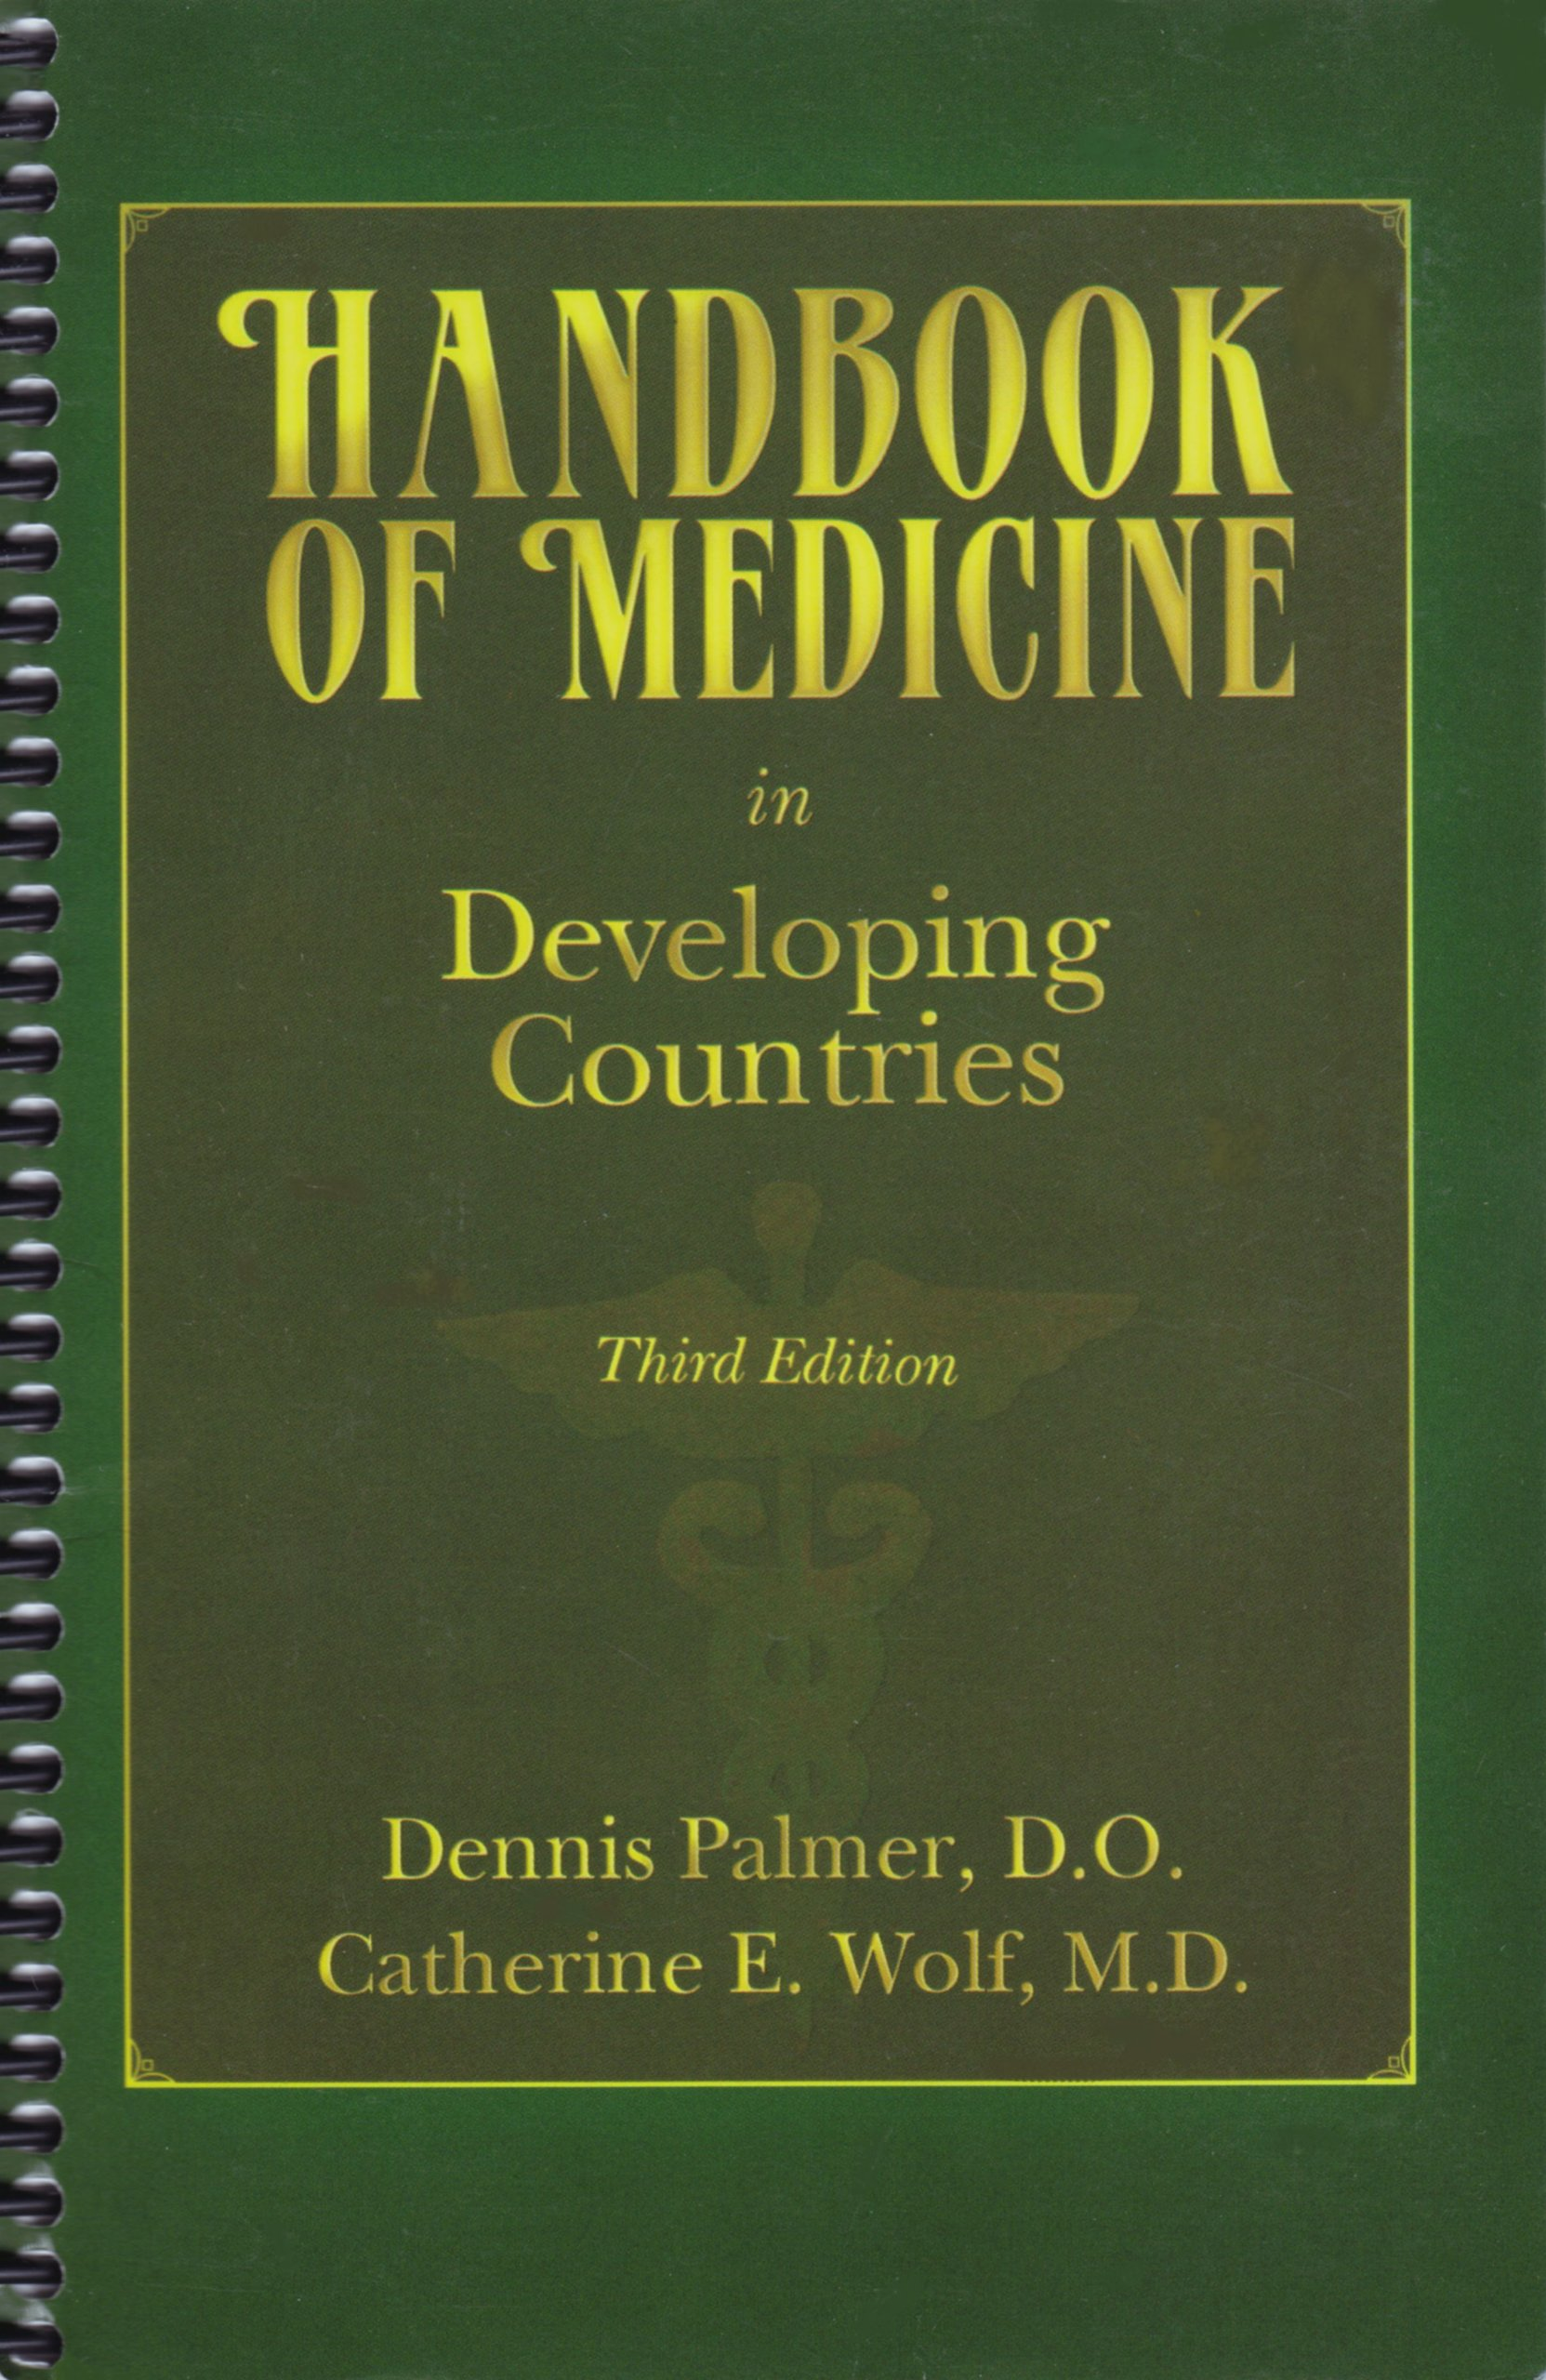 Handbook of Medicine in Developing Countries PDF